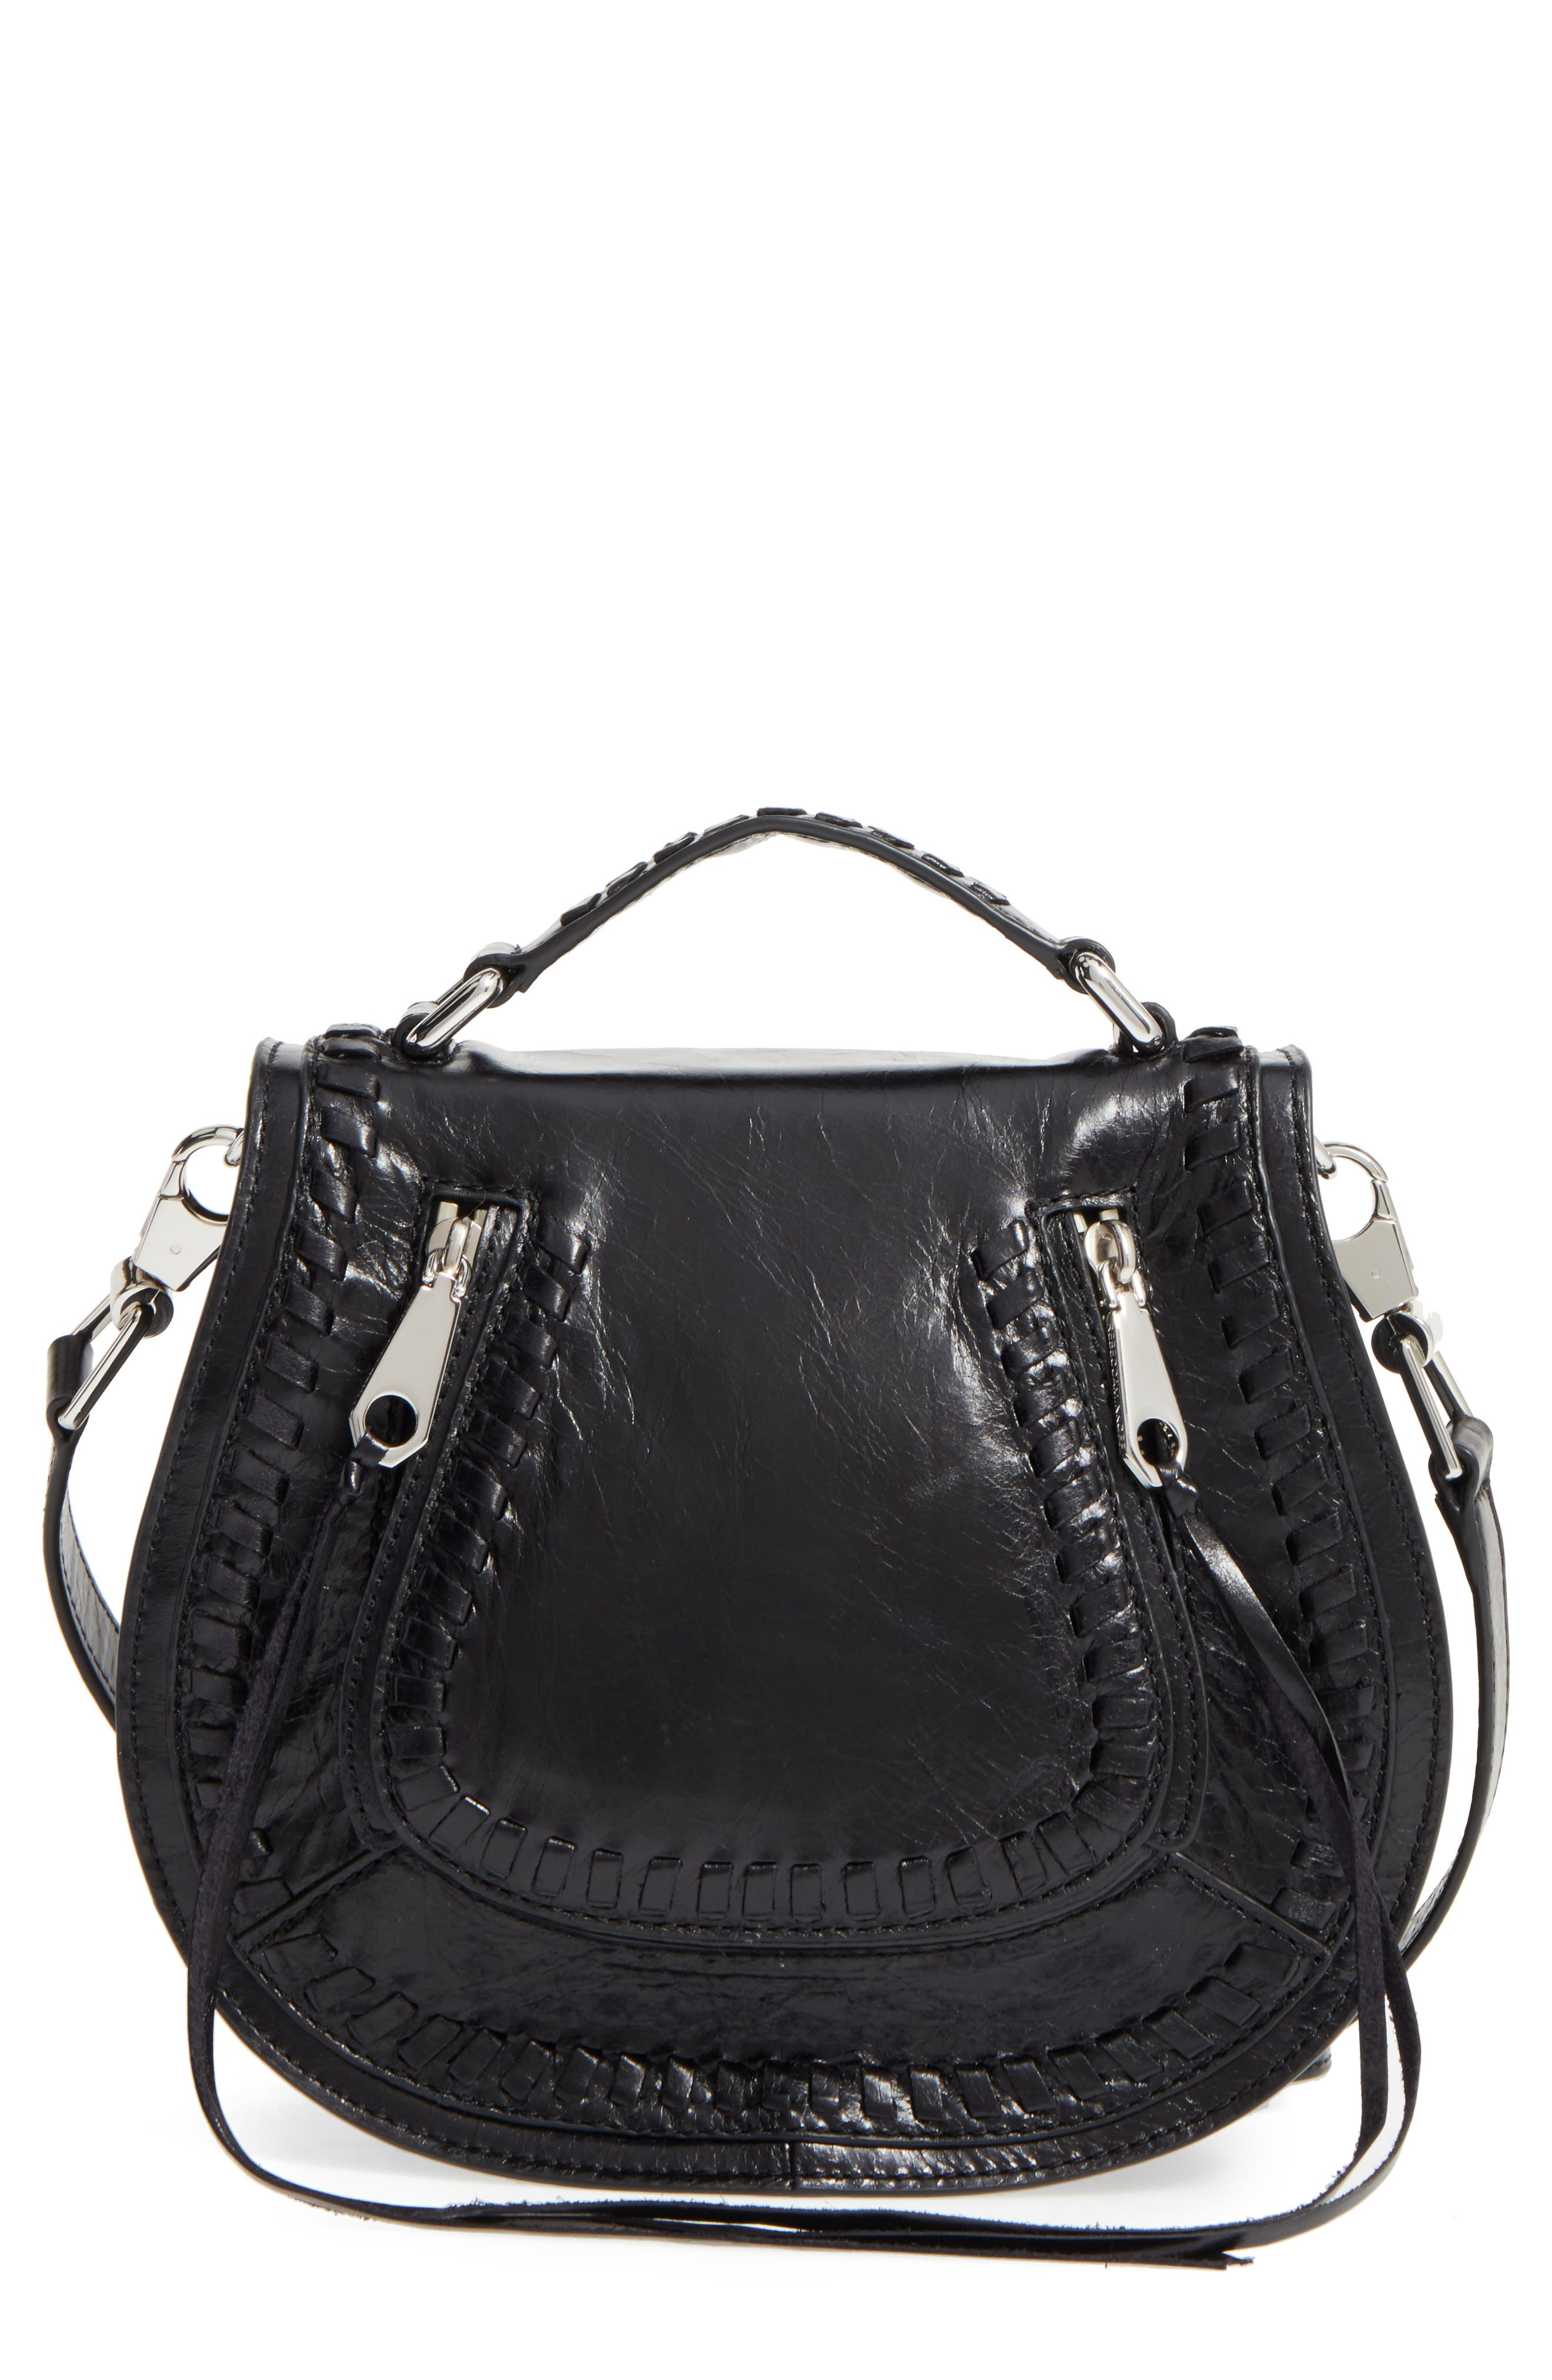 Small Vanity Leather Saddle Bag,                         Main,                         color, 001